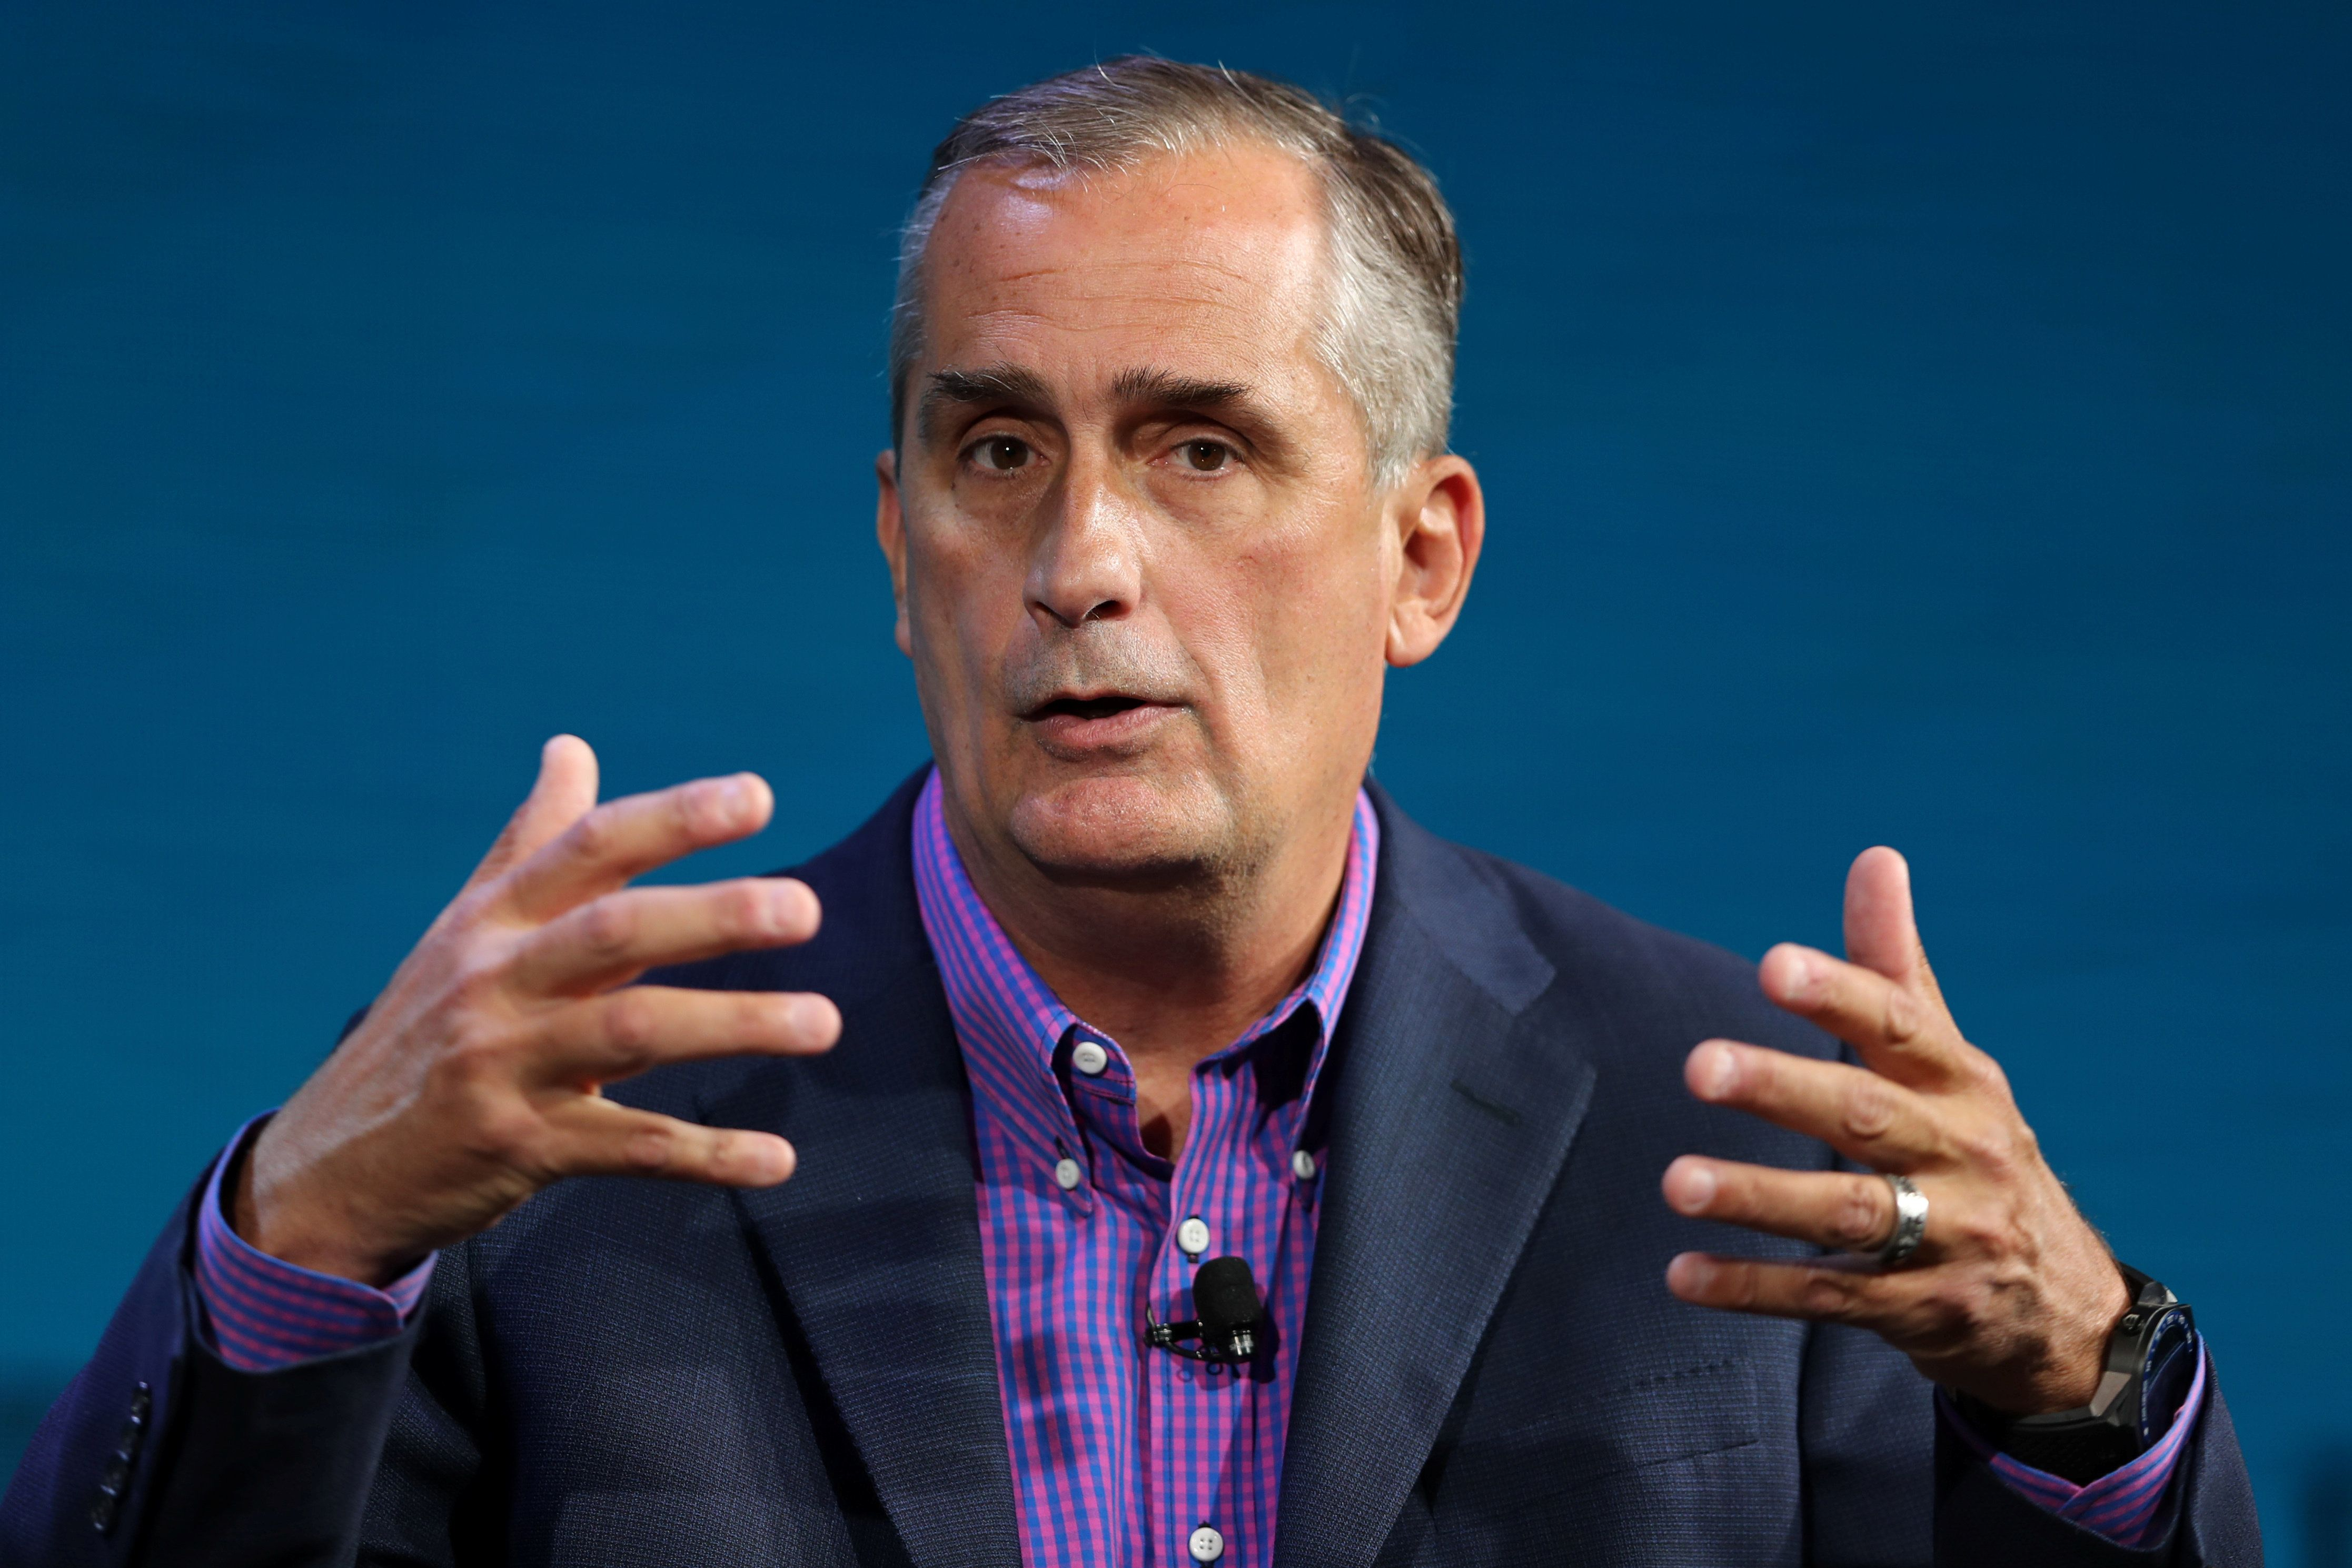 Brian Krzanich CEO of Intel speaks at the Wall Street Journal Digital conference in Laguna Beach, California, U.S., October 17, 2017. REUTERS/Mike Blake